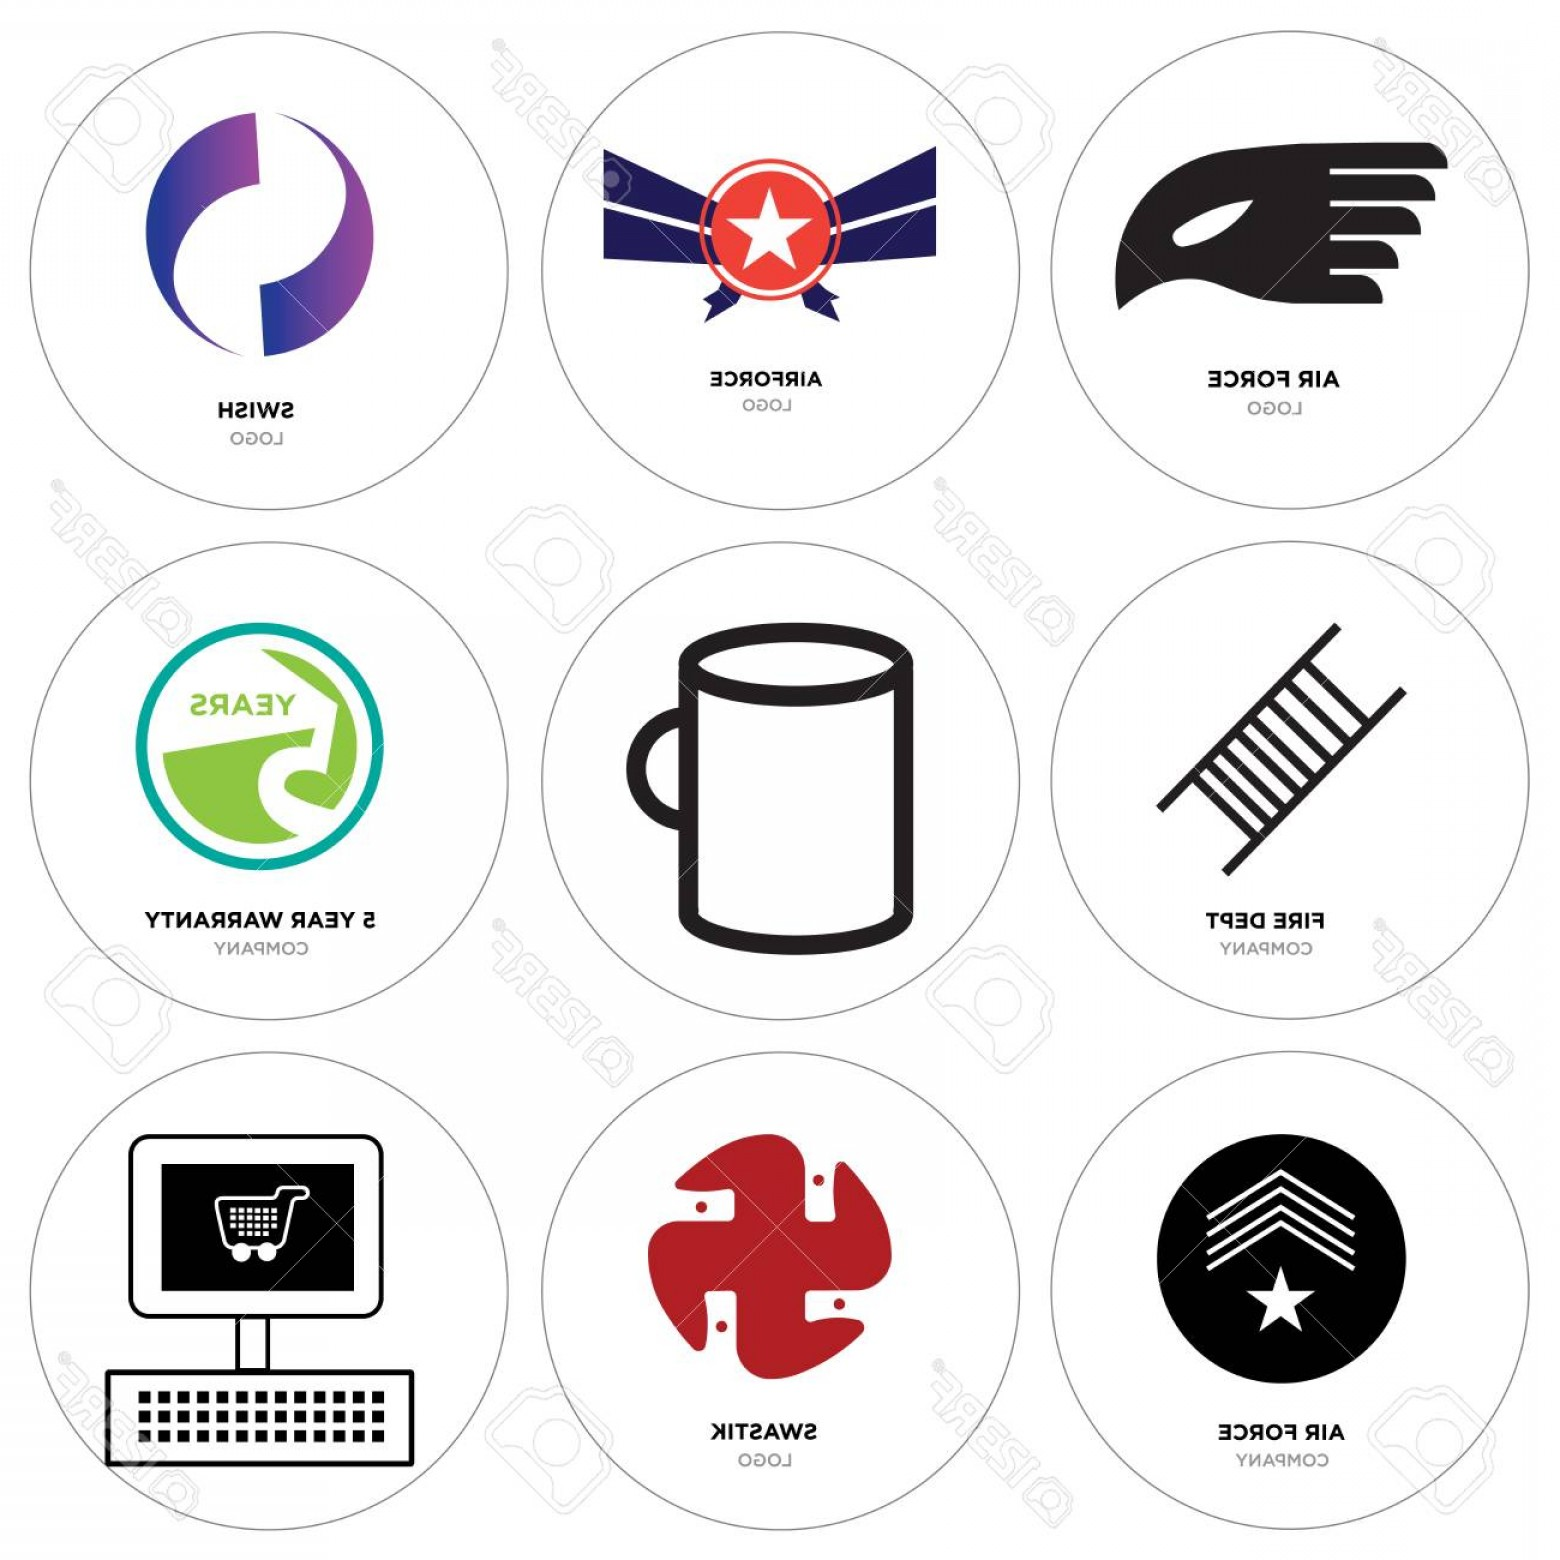 Vector Swoosh Simple Two Line: Photostock Vector Set Of Simple Editable Icons Such As On Swastik Air Force Year Warranty Cup Fire Dept Gradient P